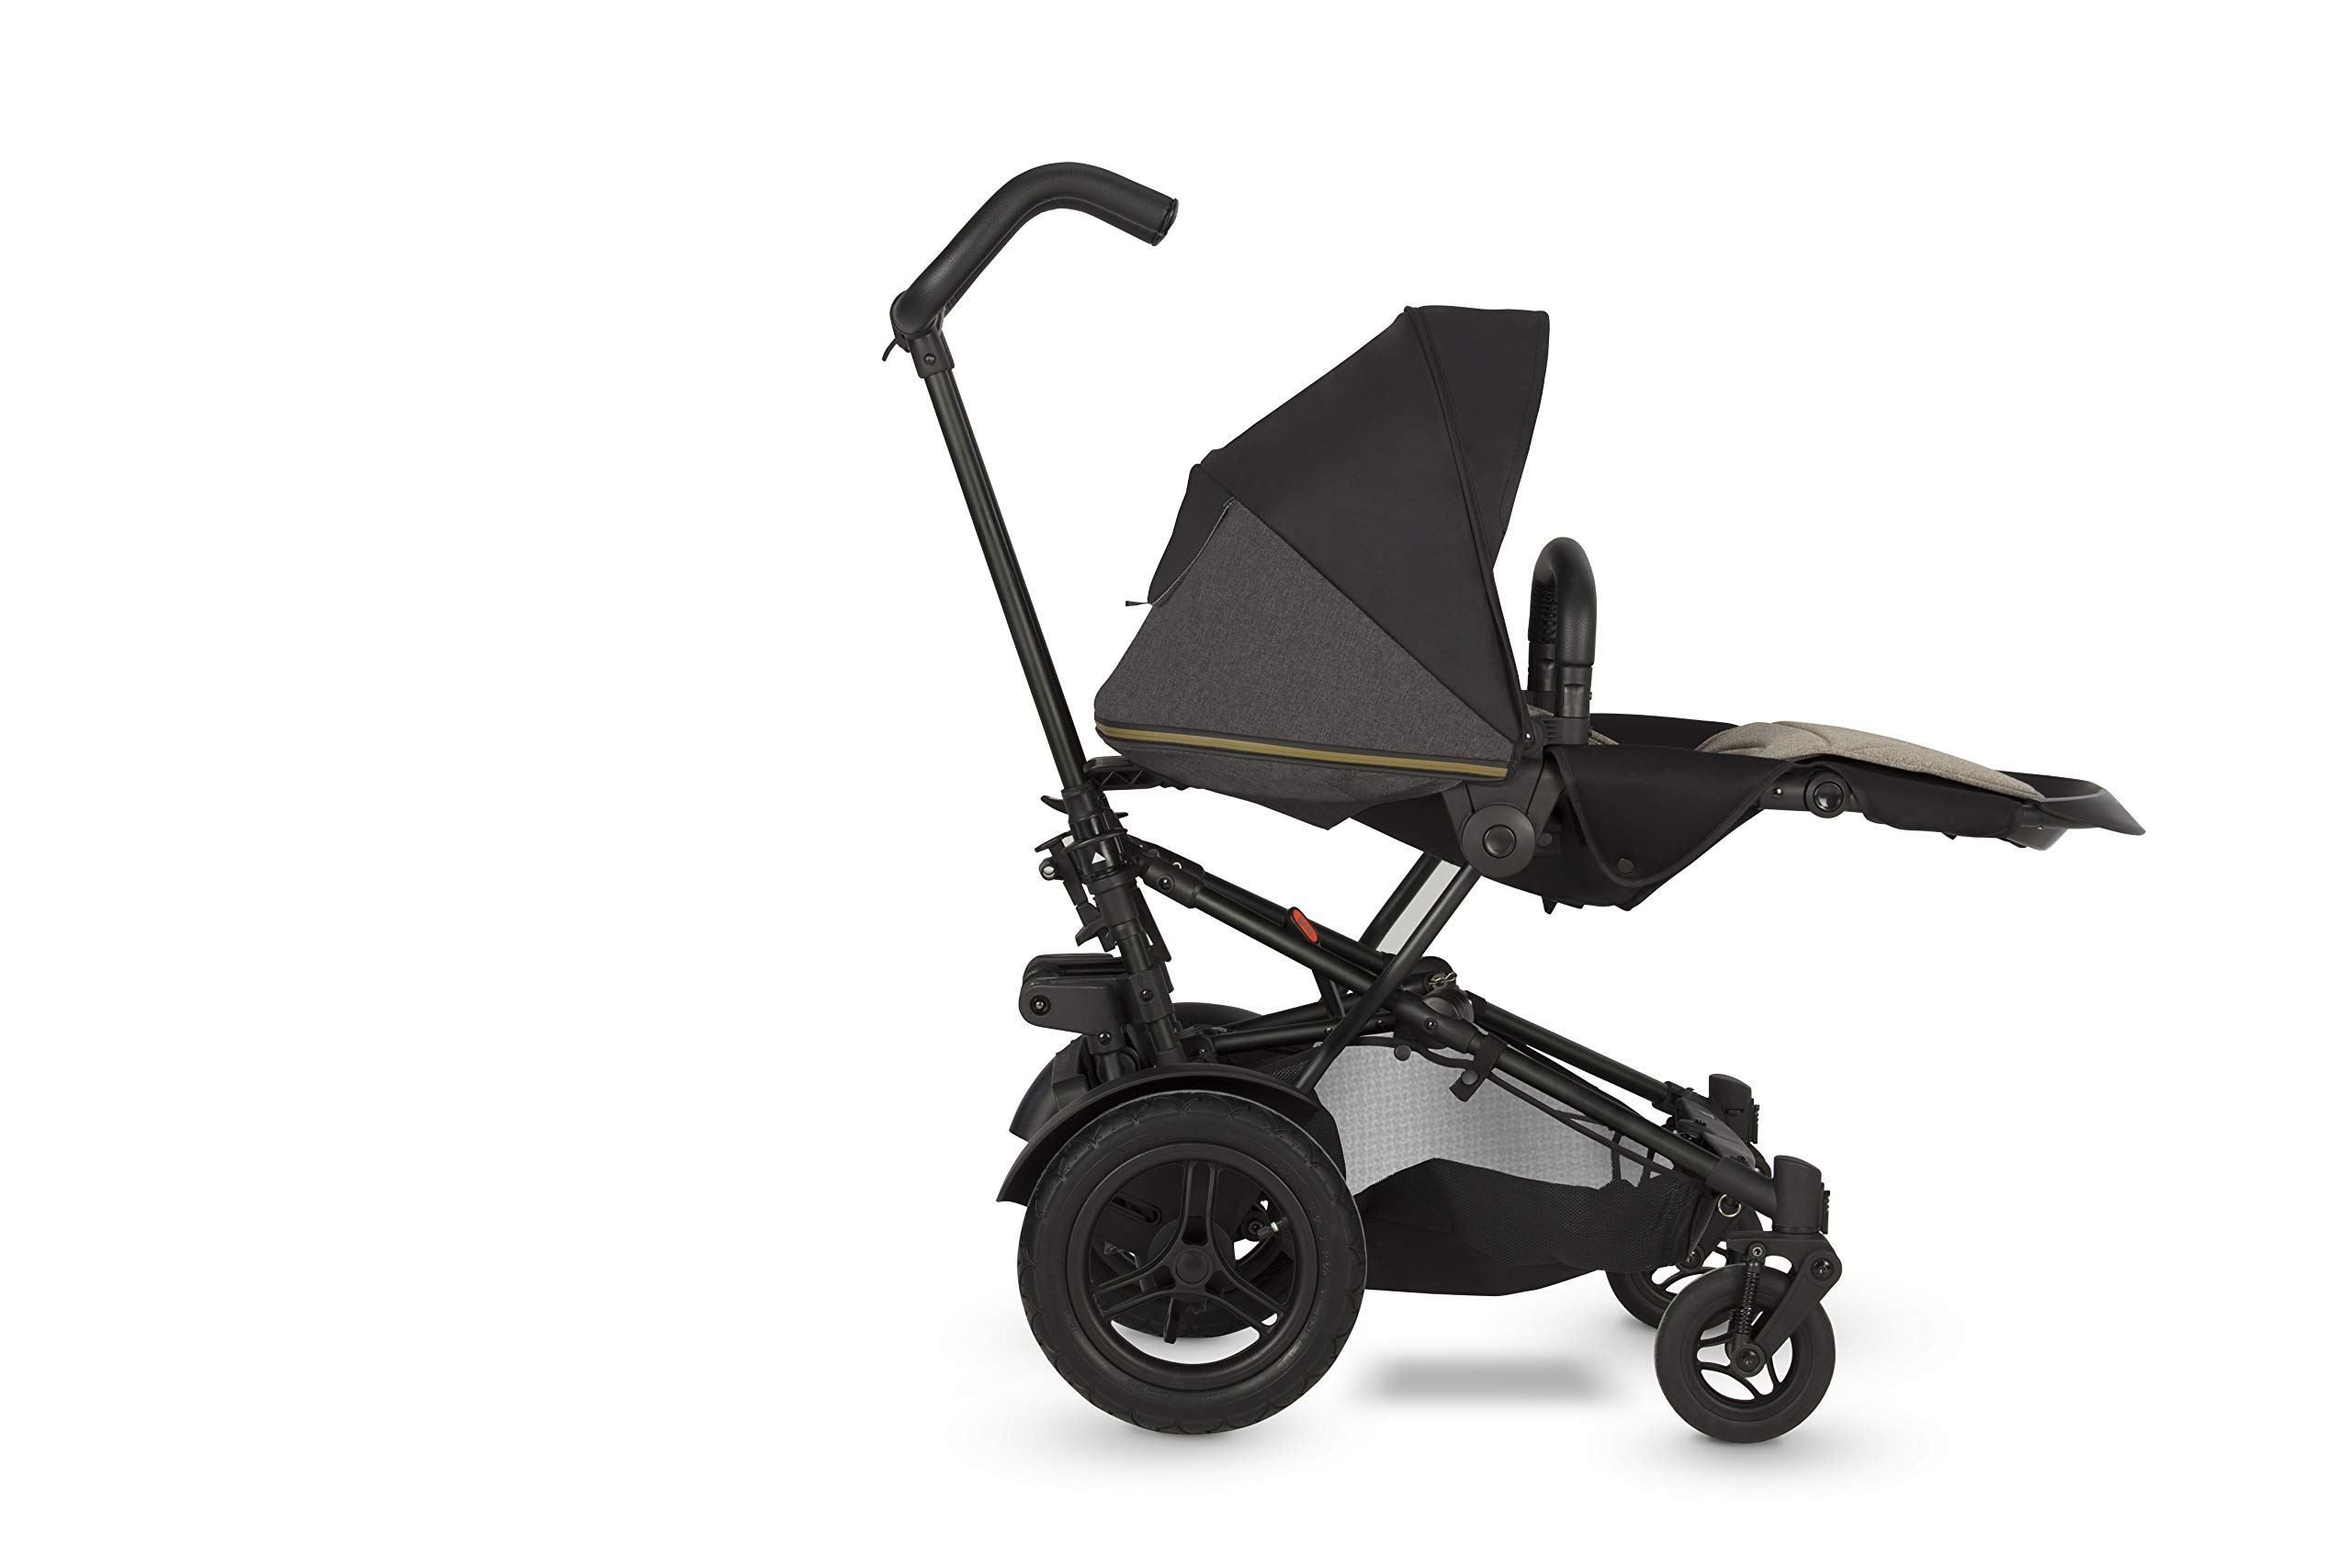 Micralite TwoFold Pushchair - Carbon. Suitable from 6 Months to 4 Years. Add Carrycot to Convert to Travel System Micralite QUICK FOLD - The TwoFold folds into one piece, with one movement. Once folded it free stands for ease of storage at home or out and about. To transport when not in use simply drag it along behind you. ALL-TERRAIN WHEELS - Large air filled back tyres, high mud guards and great ground clearance mean you can still go anywhere even with two in tow. You don't have to worry about getting a puncture either as the pneumatic tyres are lined with Kevlar - the same fibre used in bullet proof vests! WEATHERPROOF FABRICS - Dressed with signature Micralite high quality weatherproof fabrics, the hood of the TwoFold turns water just aswell as it deflects the sun's harmful rays. We also include a storm cover for more extreme weather - so nothing can stop you and your little one from getting out there. 8